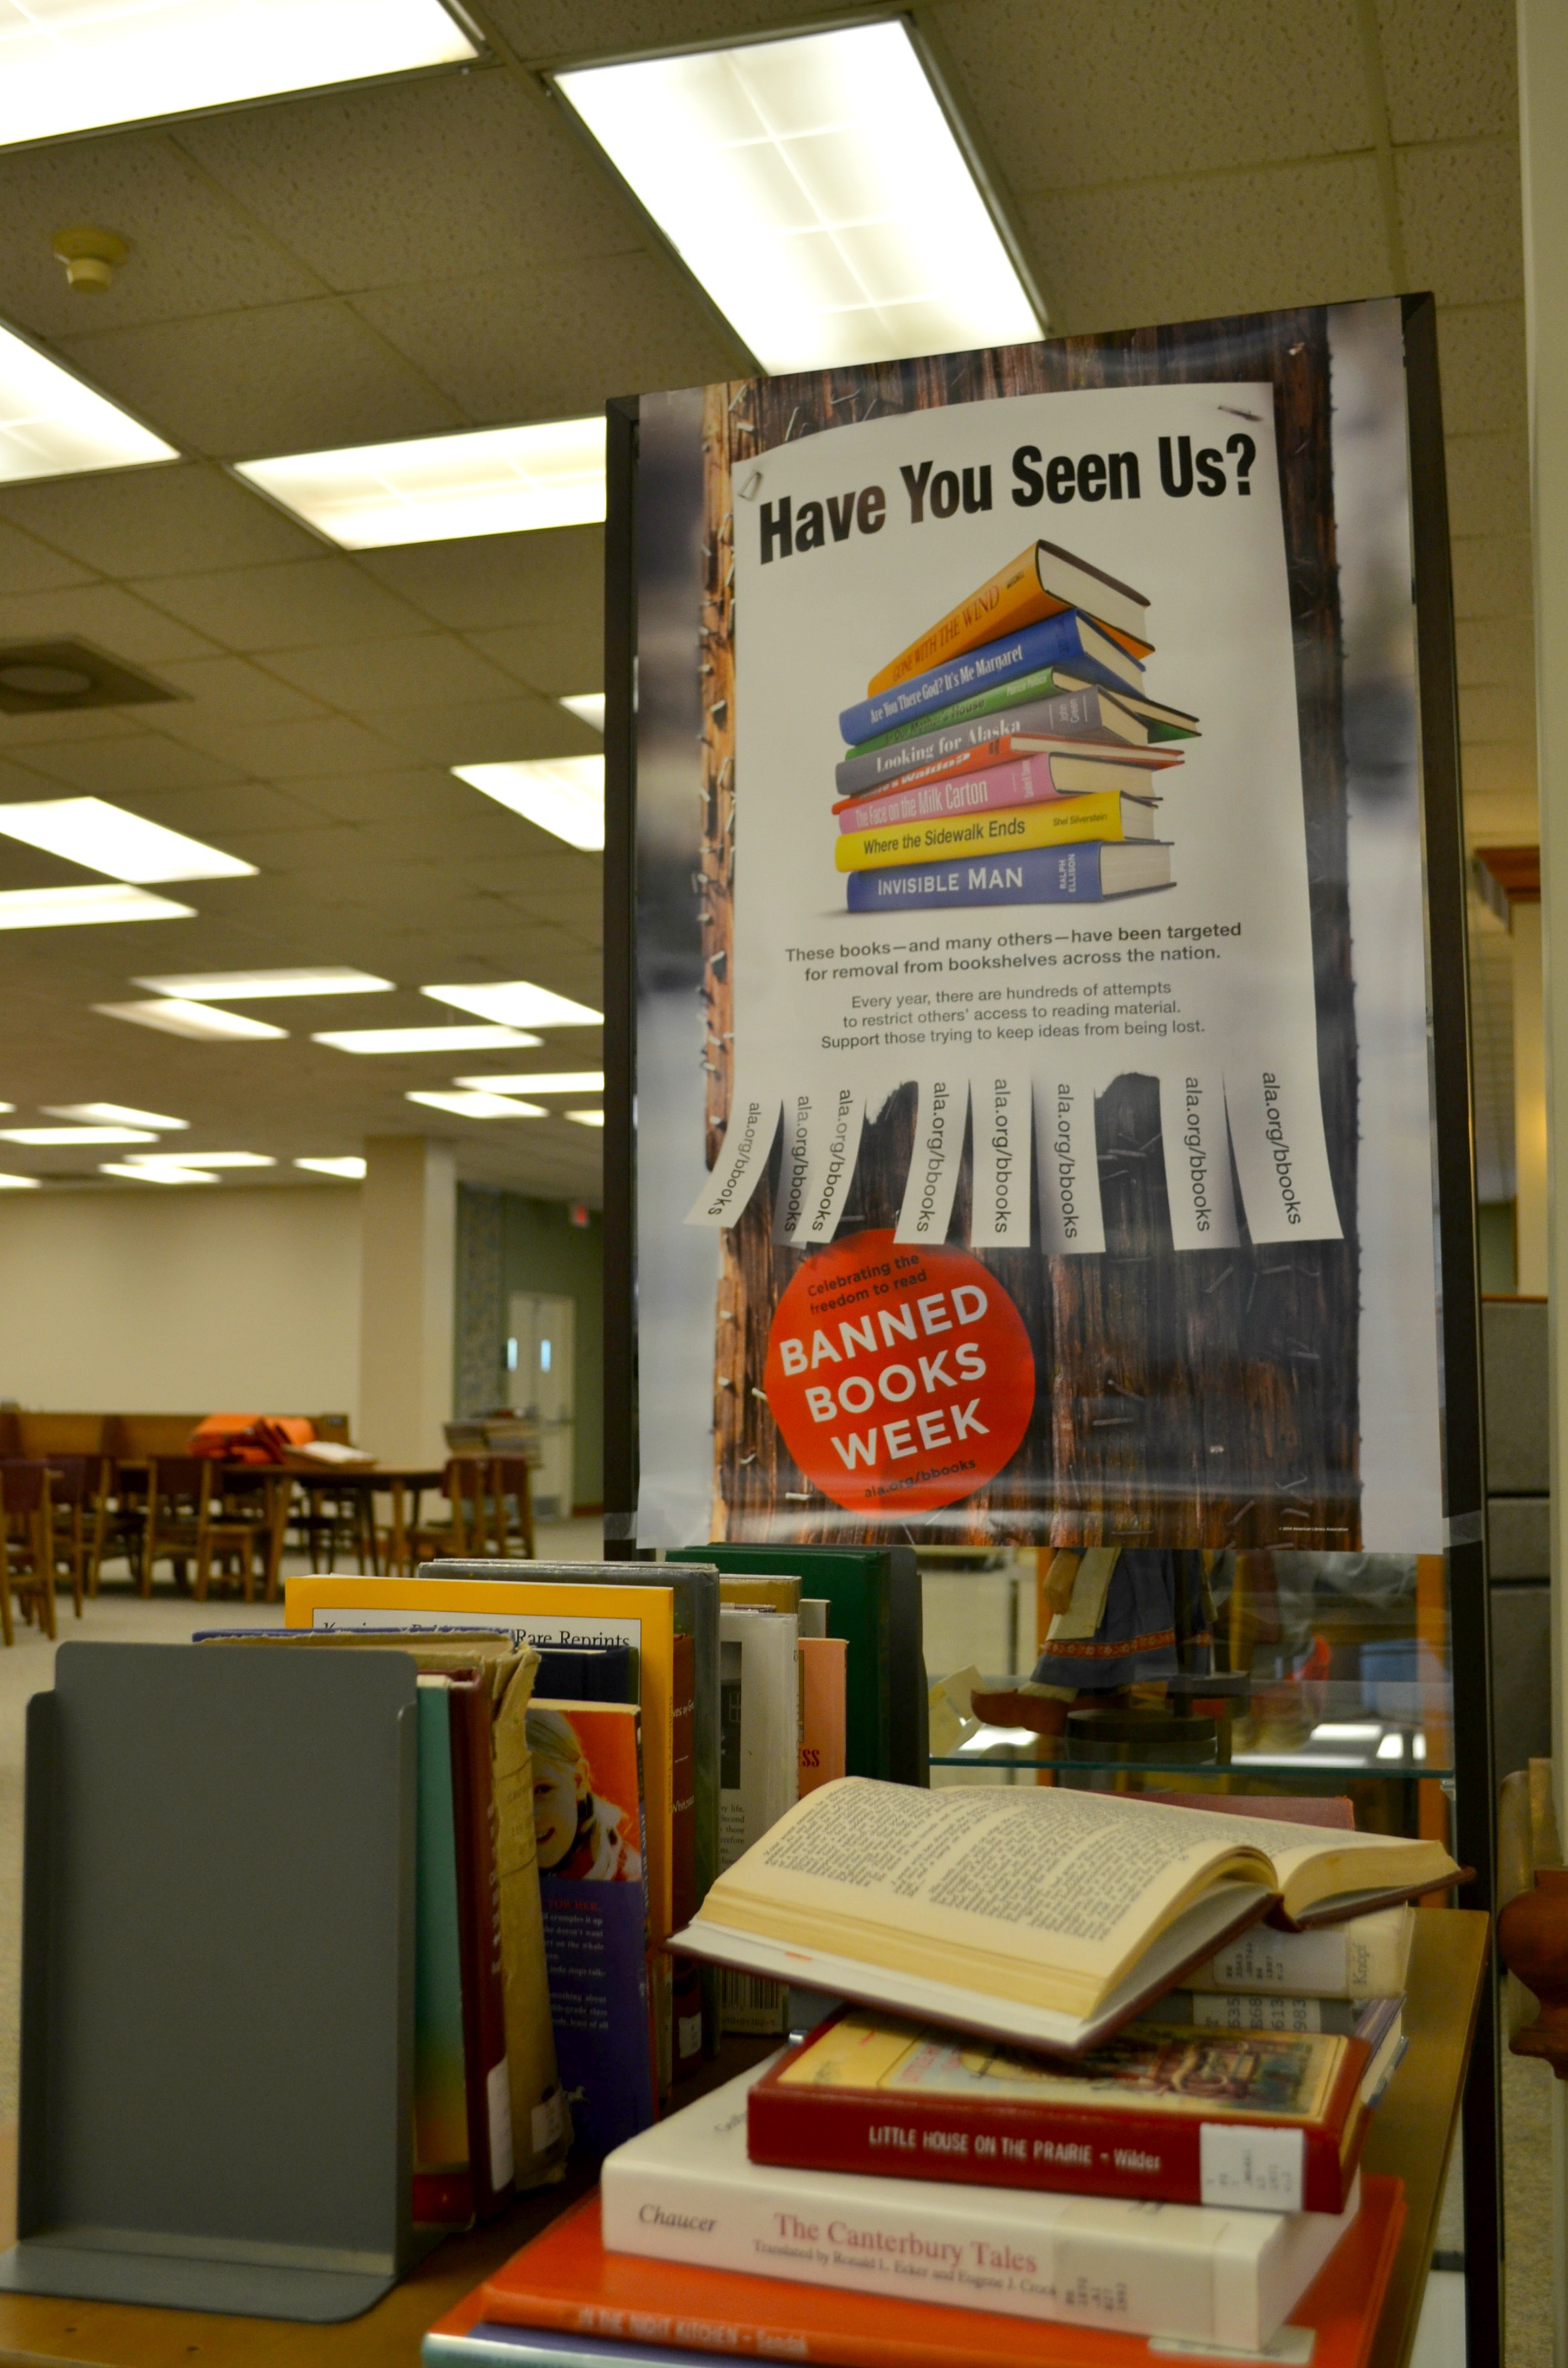 Carmichael Library lauds banned books